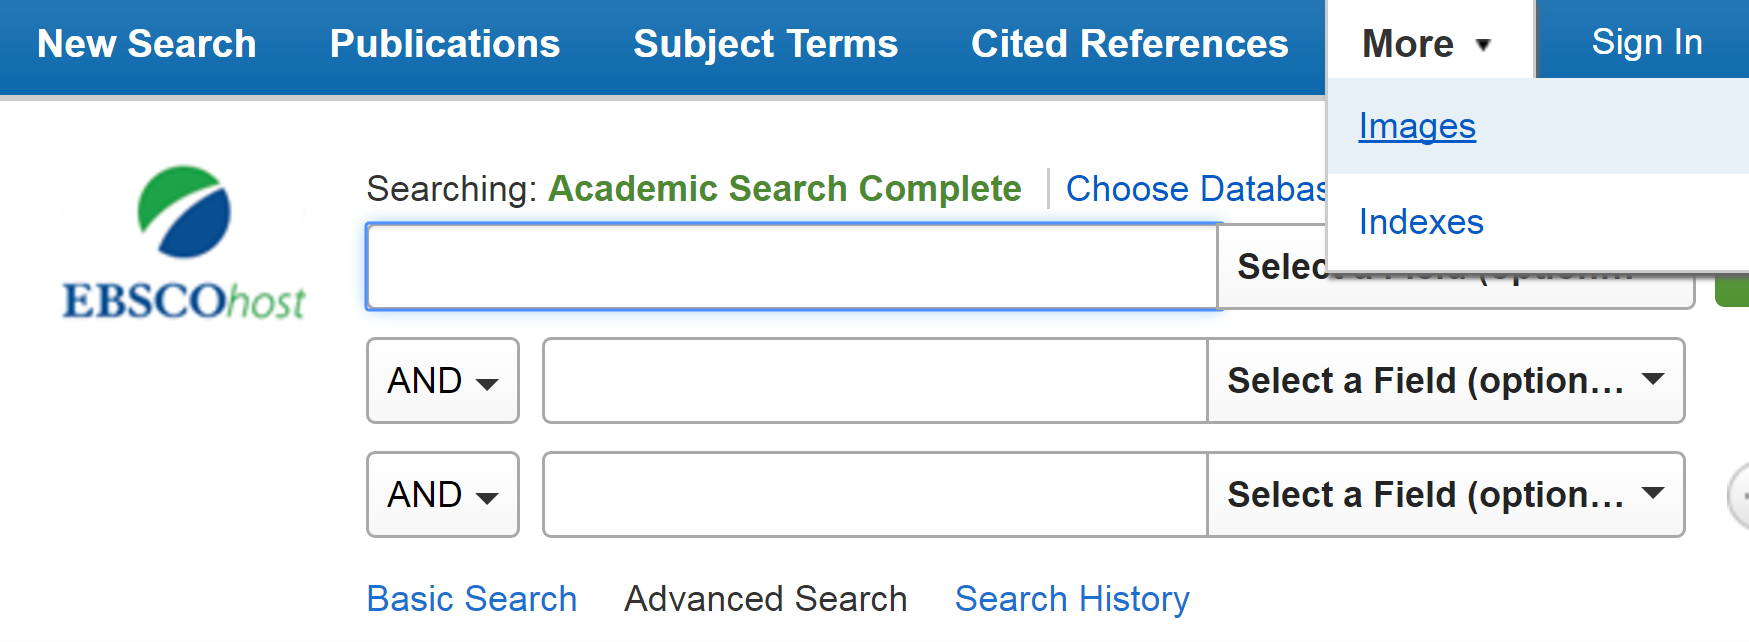 To search for images in Academic Search complete, click more at the top of the page and select Images from the drop down menu